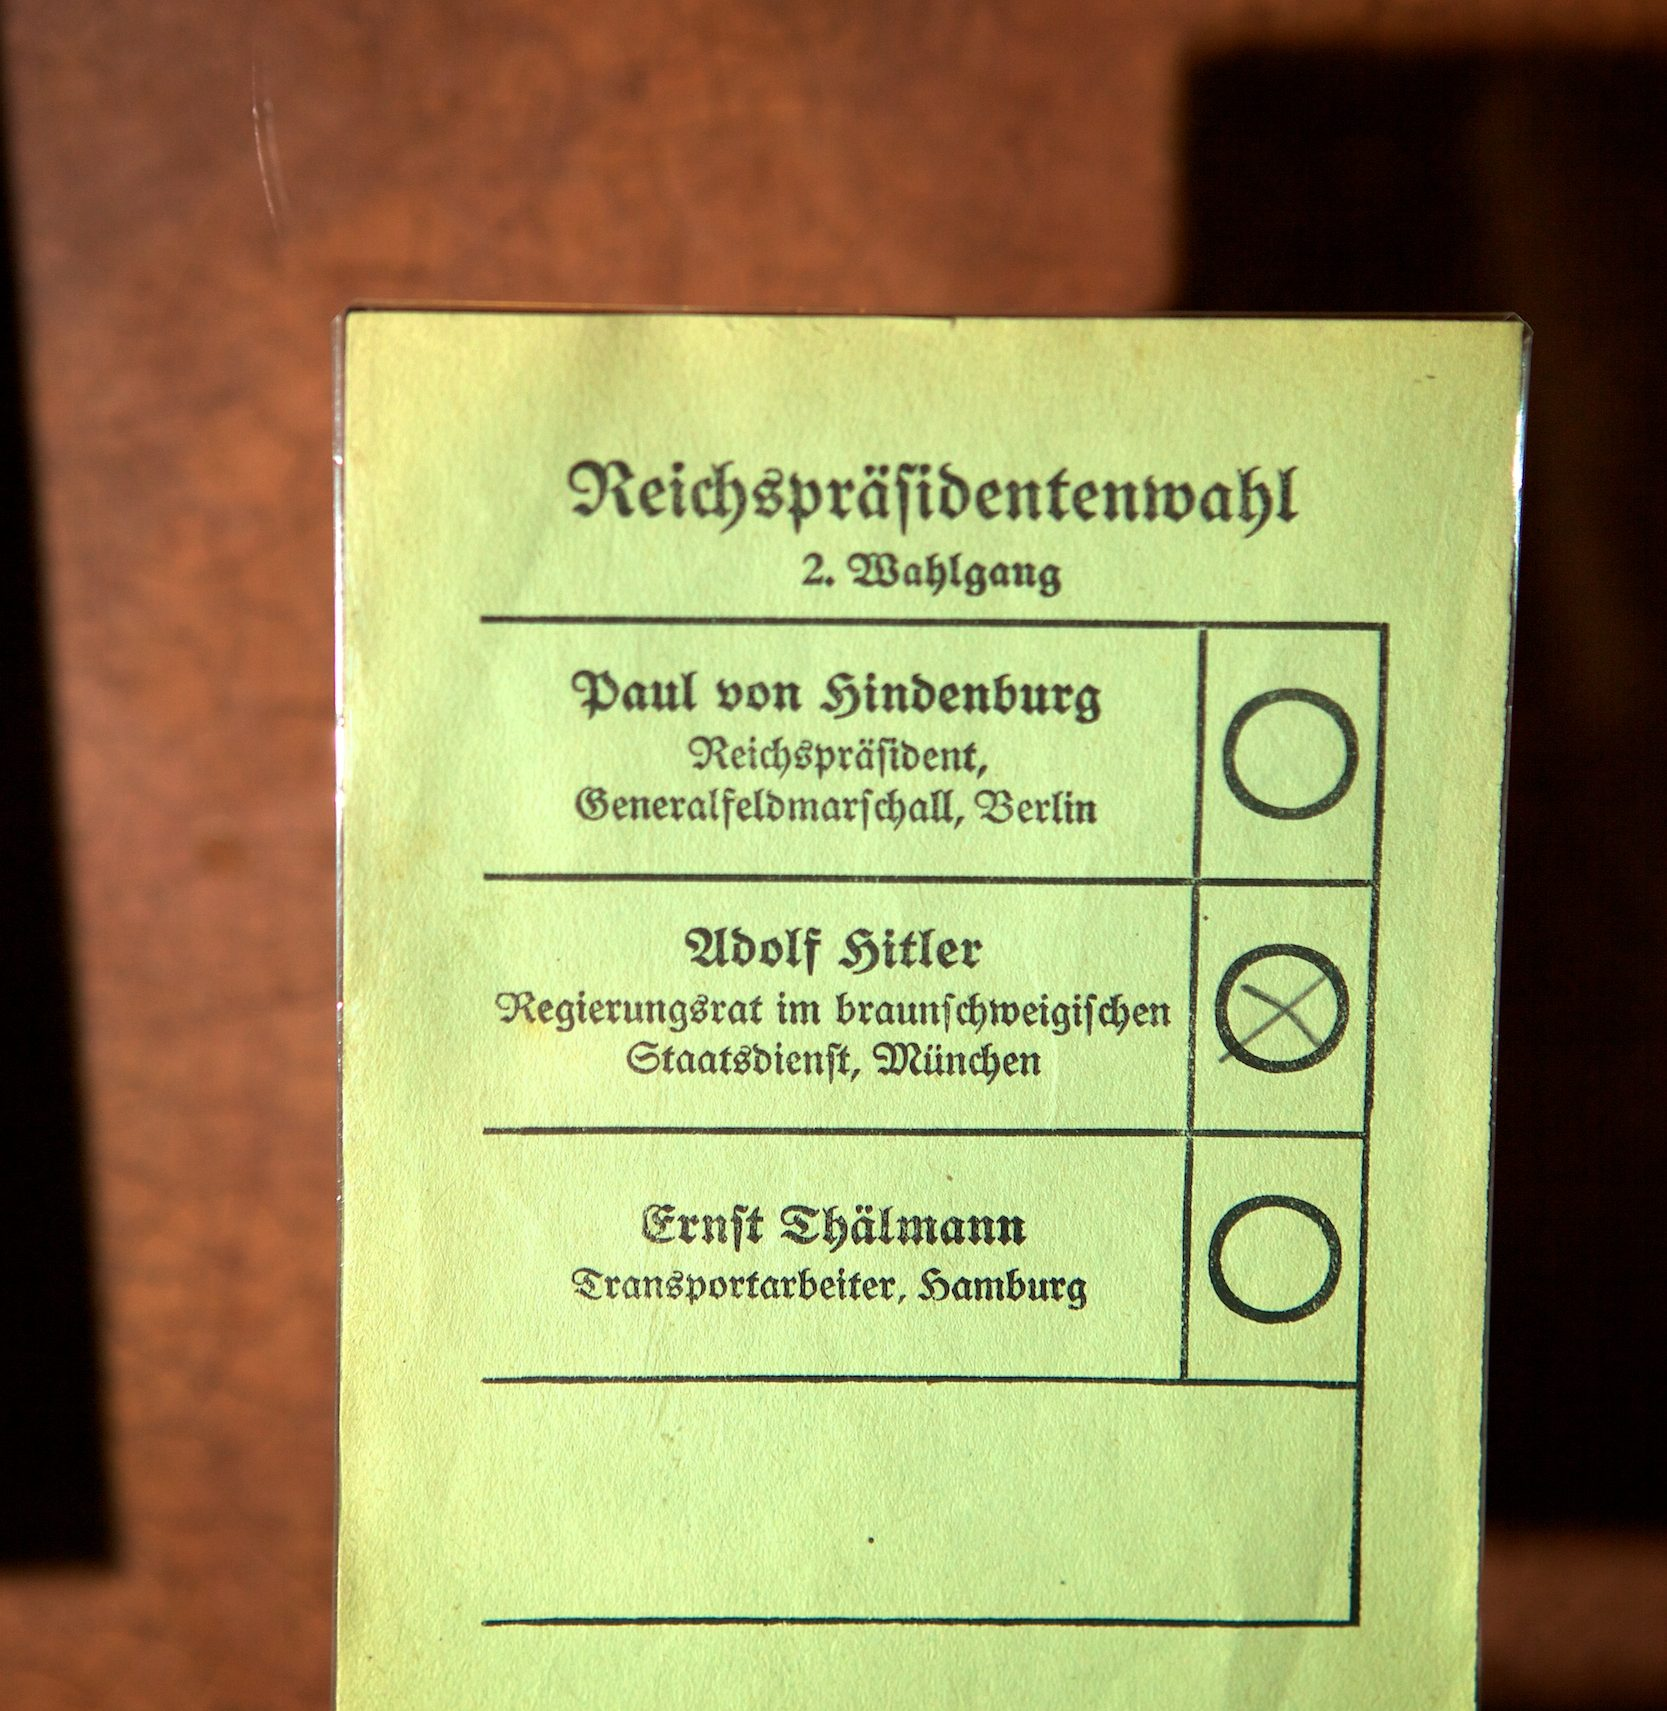 Voting ballot for the 1932 presidential election. Germany, 1932. Photo: Vadim Daniel